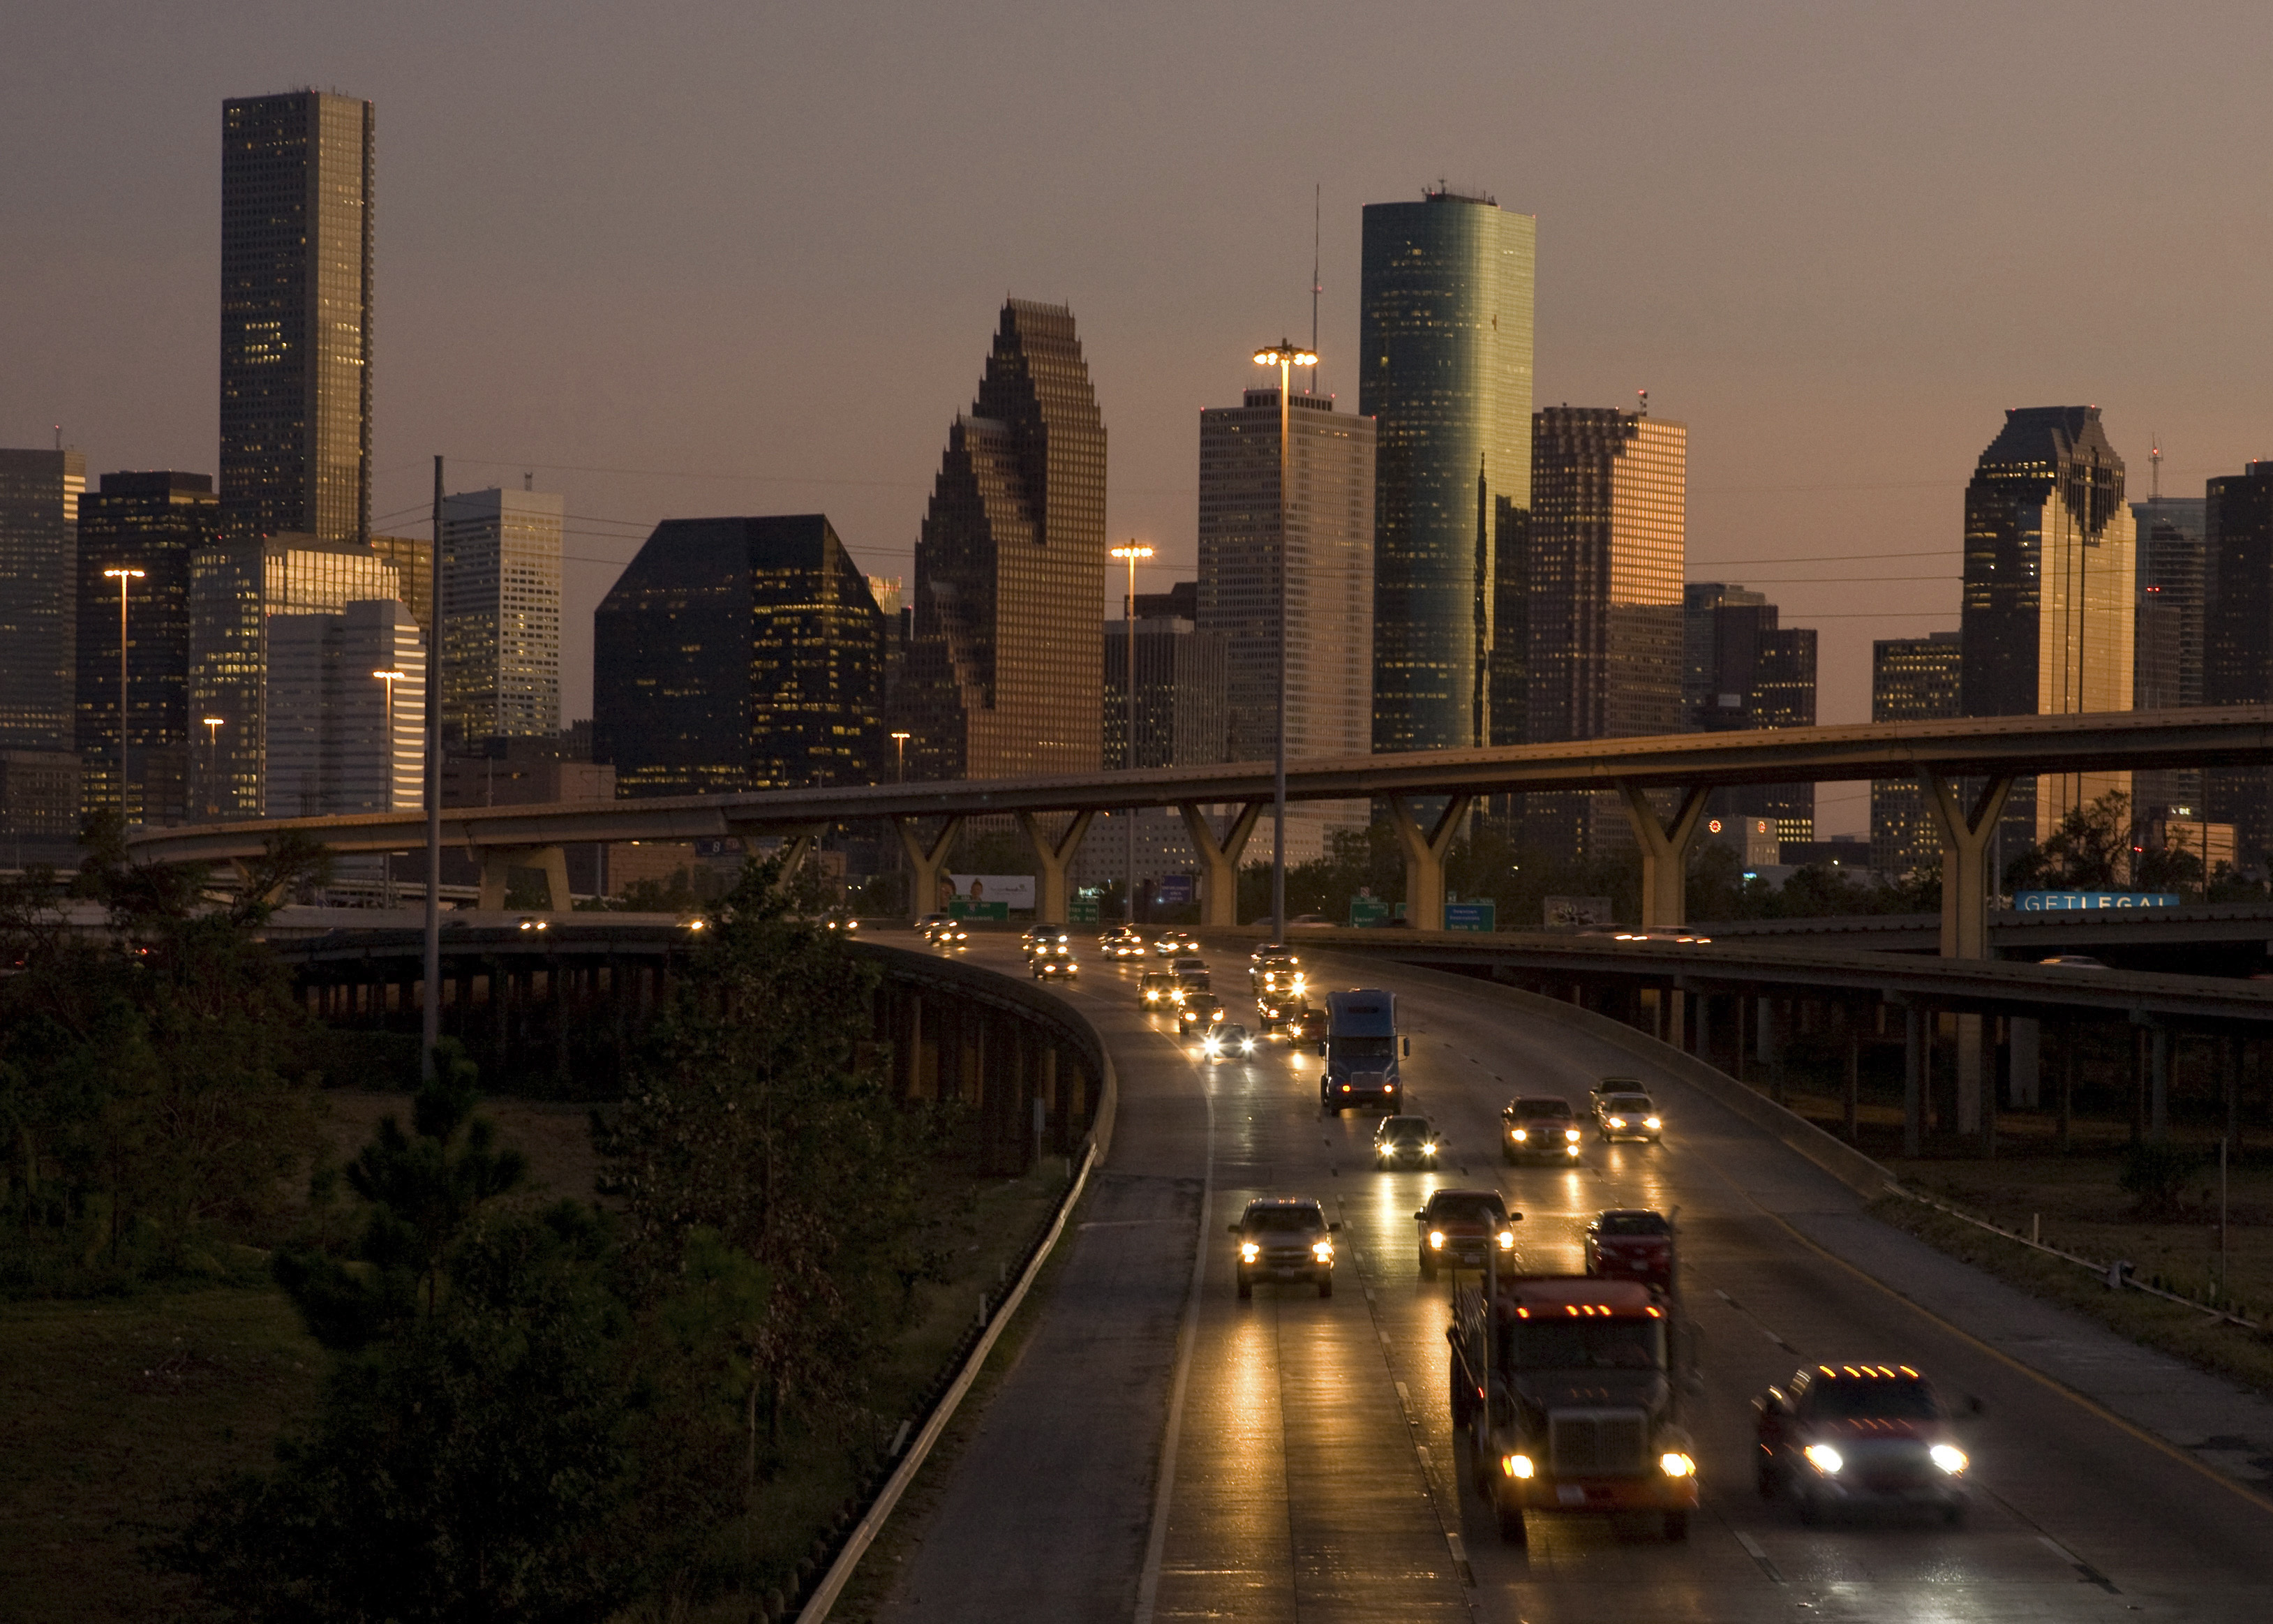 Traffic flows at dusk with the downtown Houston skyline in the background as night falls.   REUTERS/Richard Carson